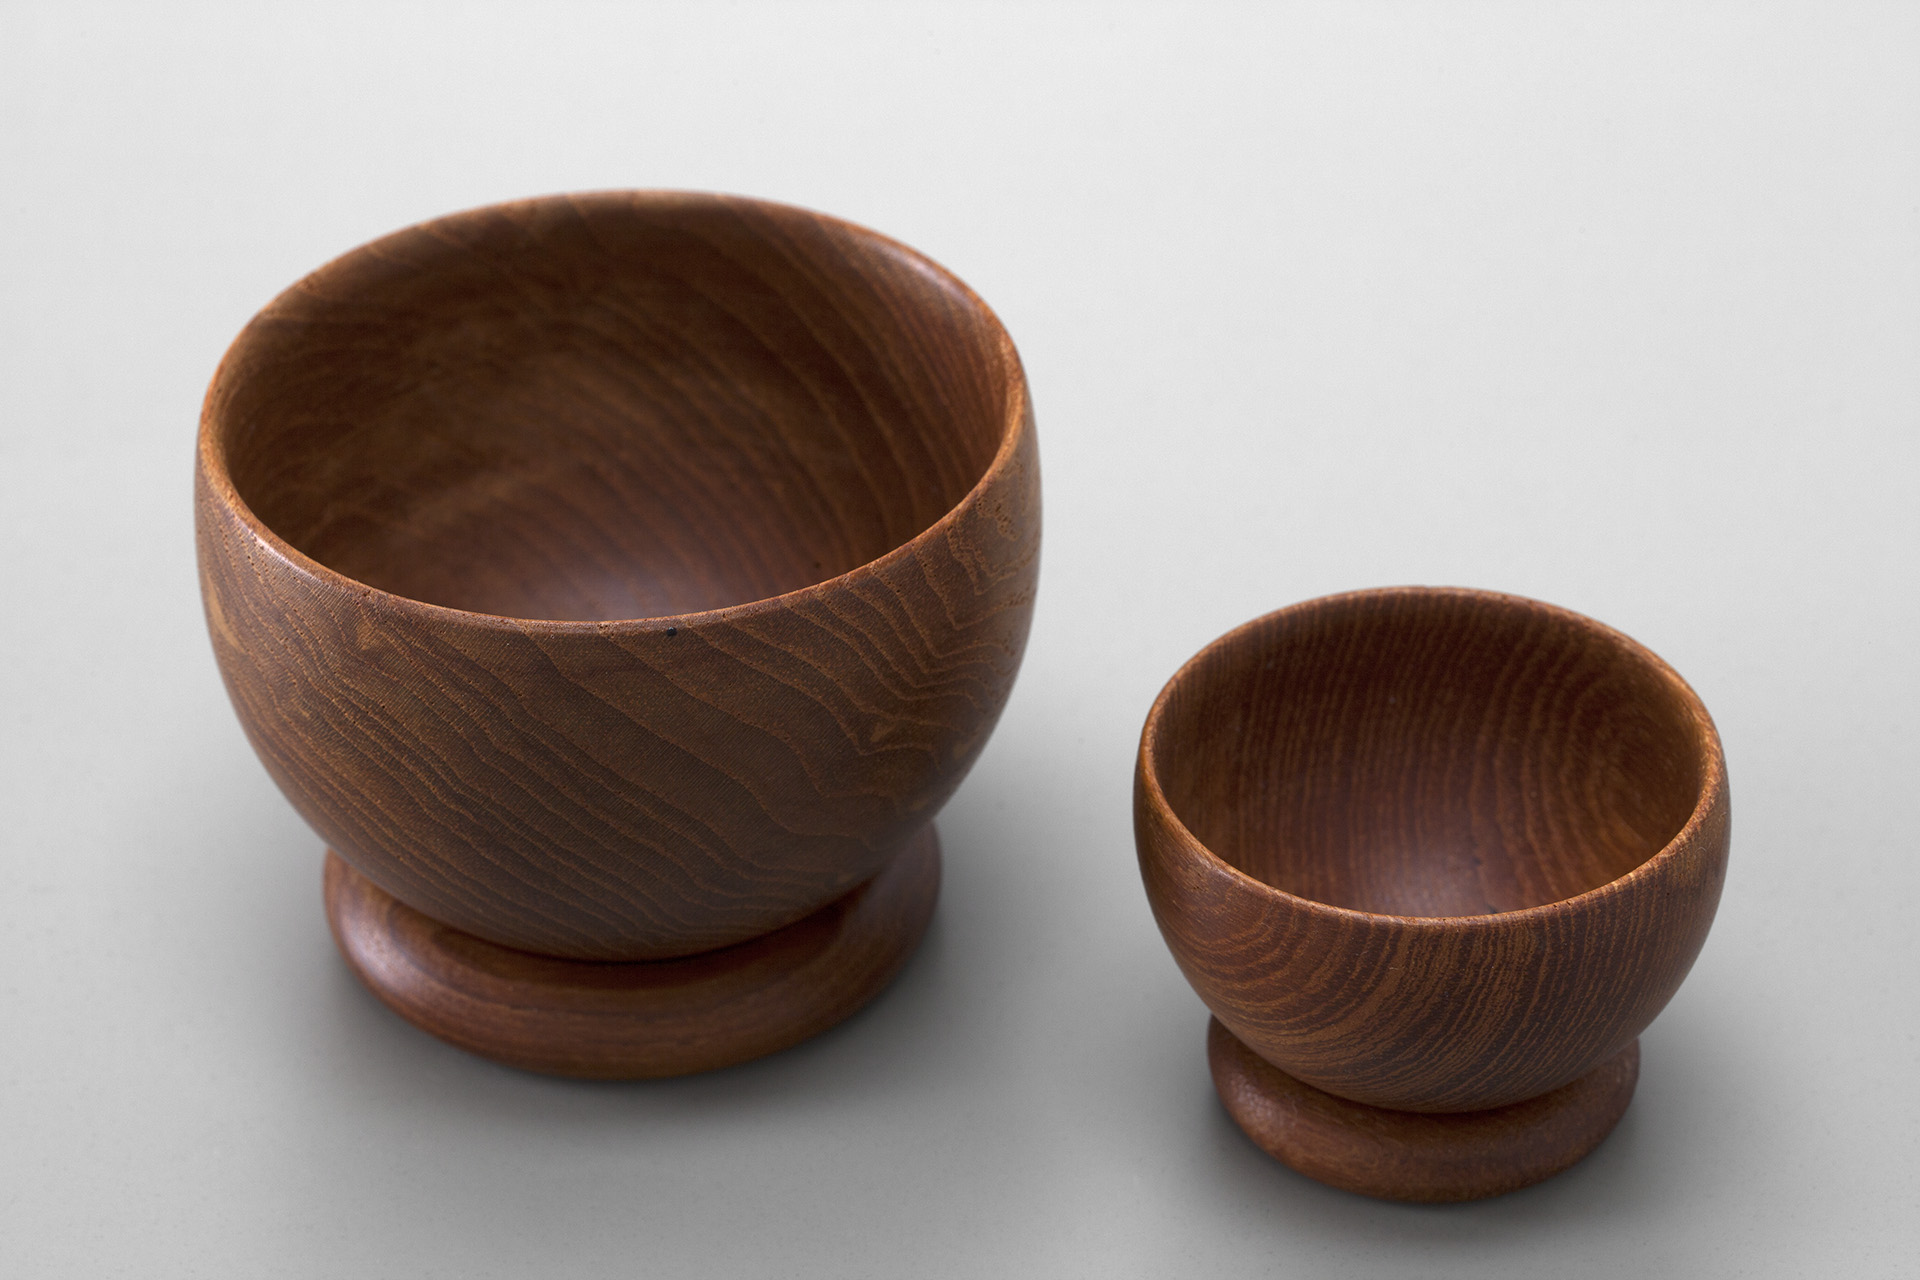 Two Miniature Bowls